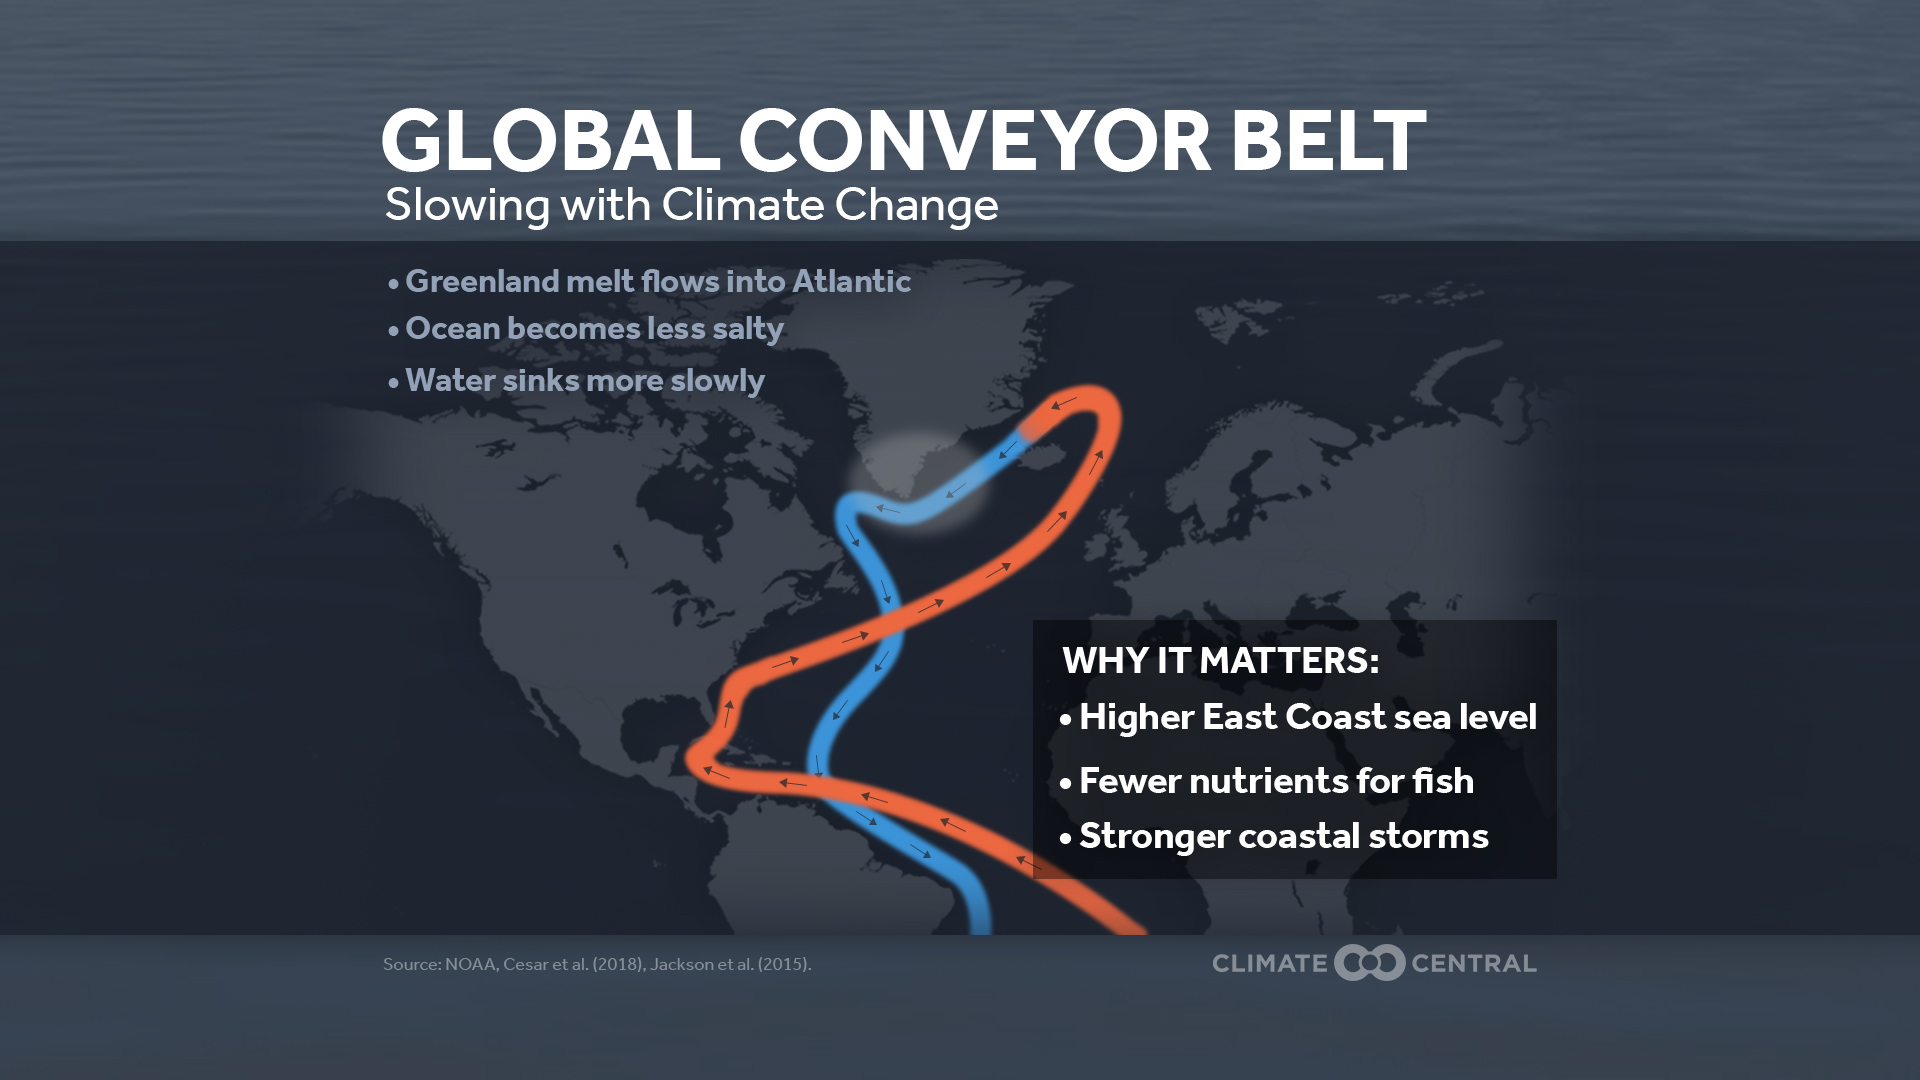 Climate Change and the Conveyor Belt of Responsibility